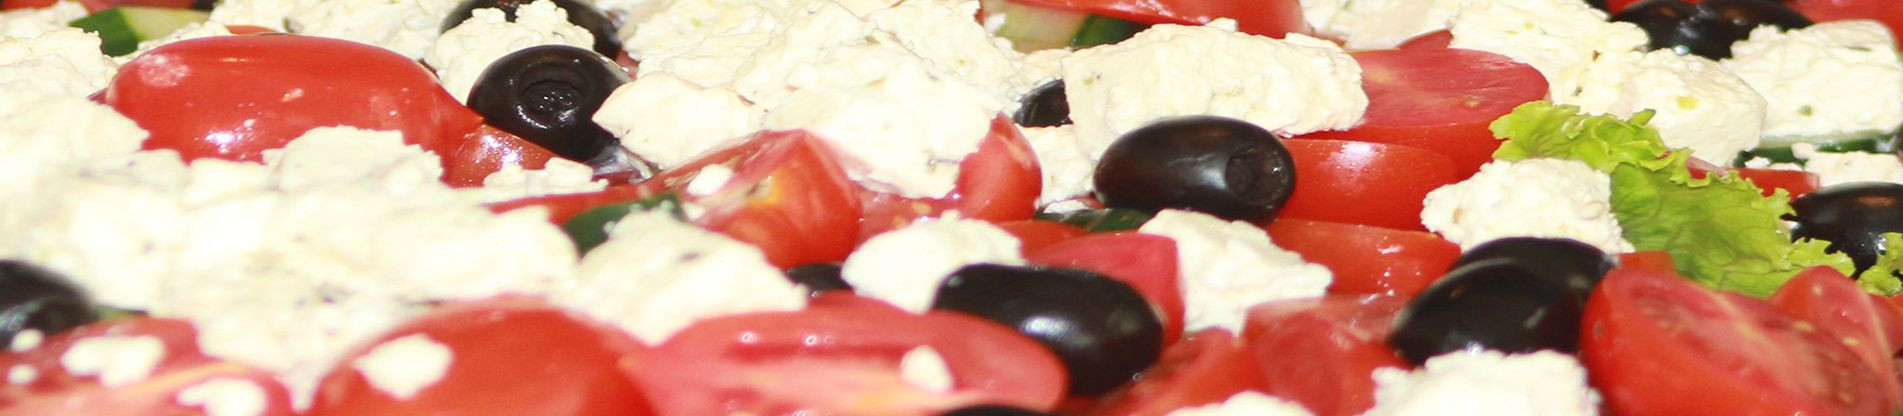 Thymekitchen-Greek-Salad-compressor.jpg